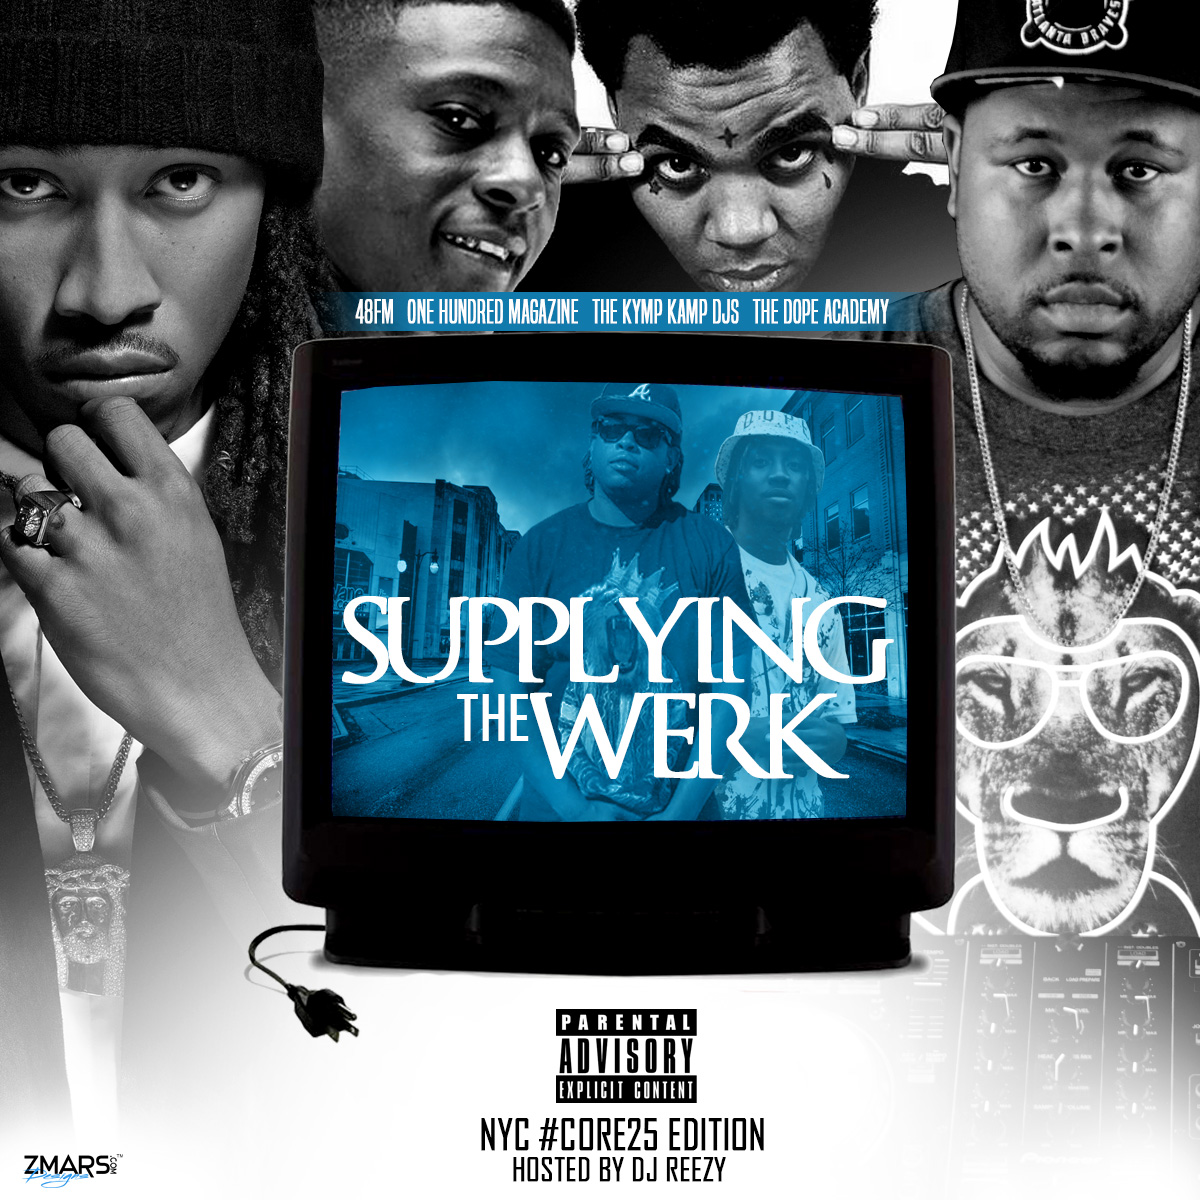 supplying the werk cover